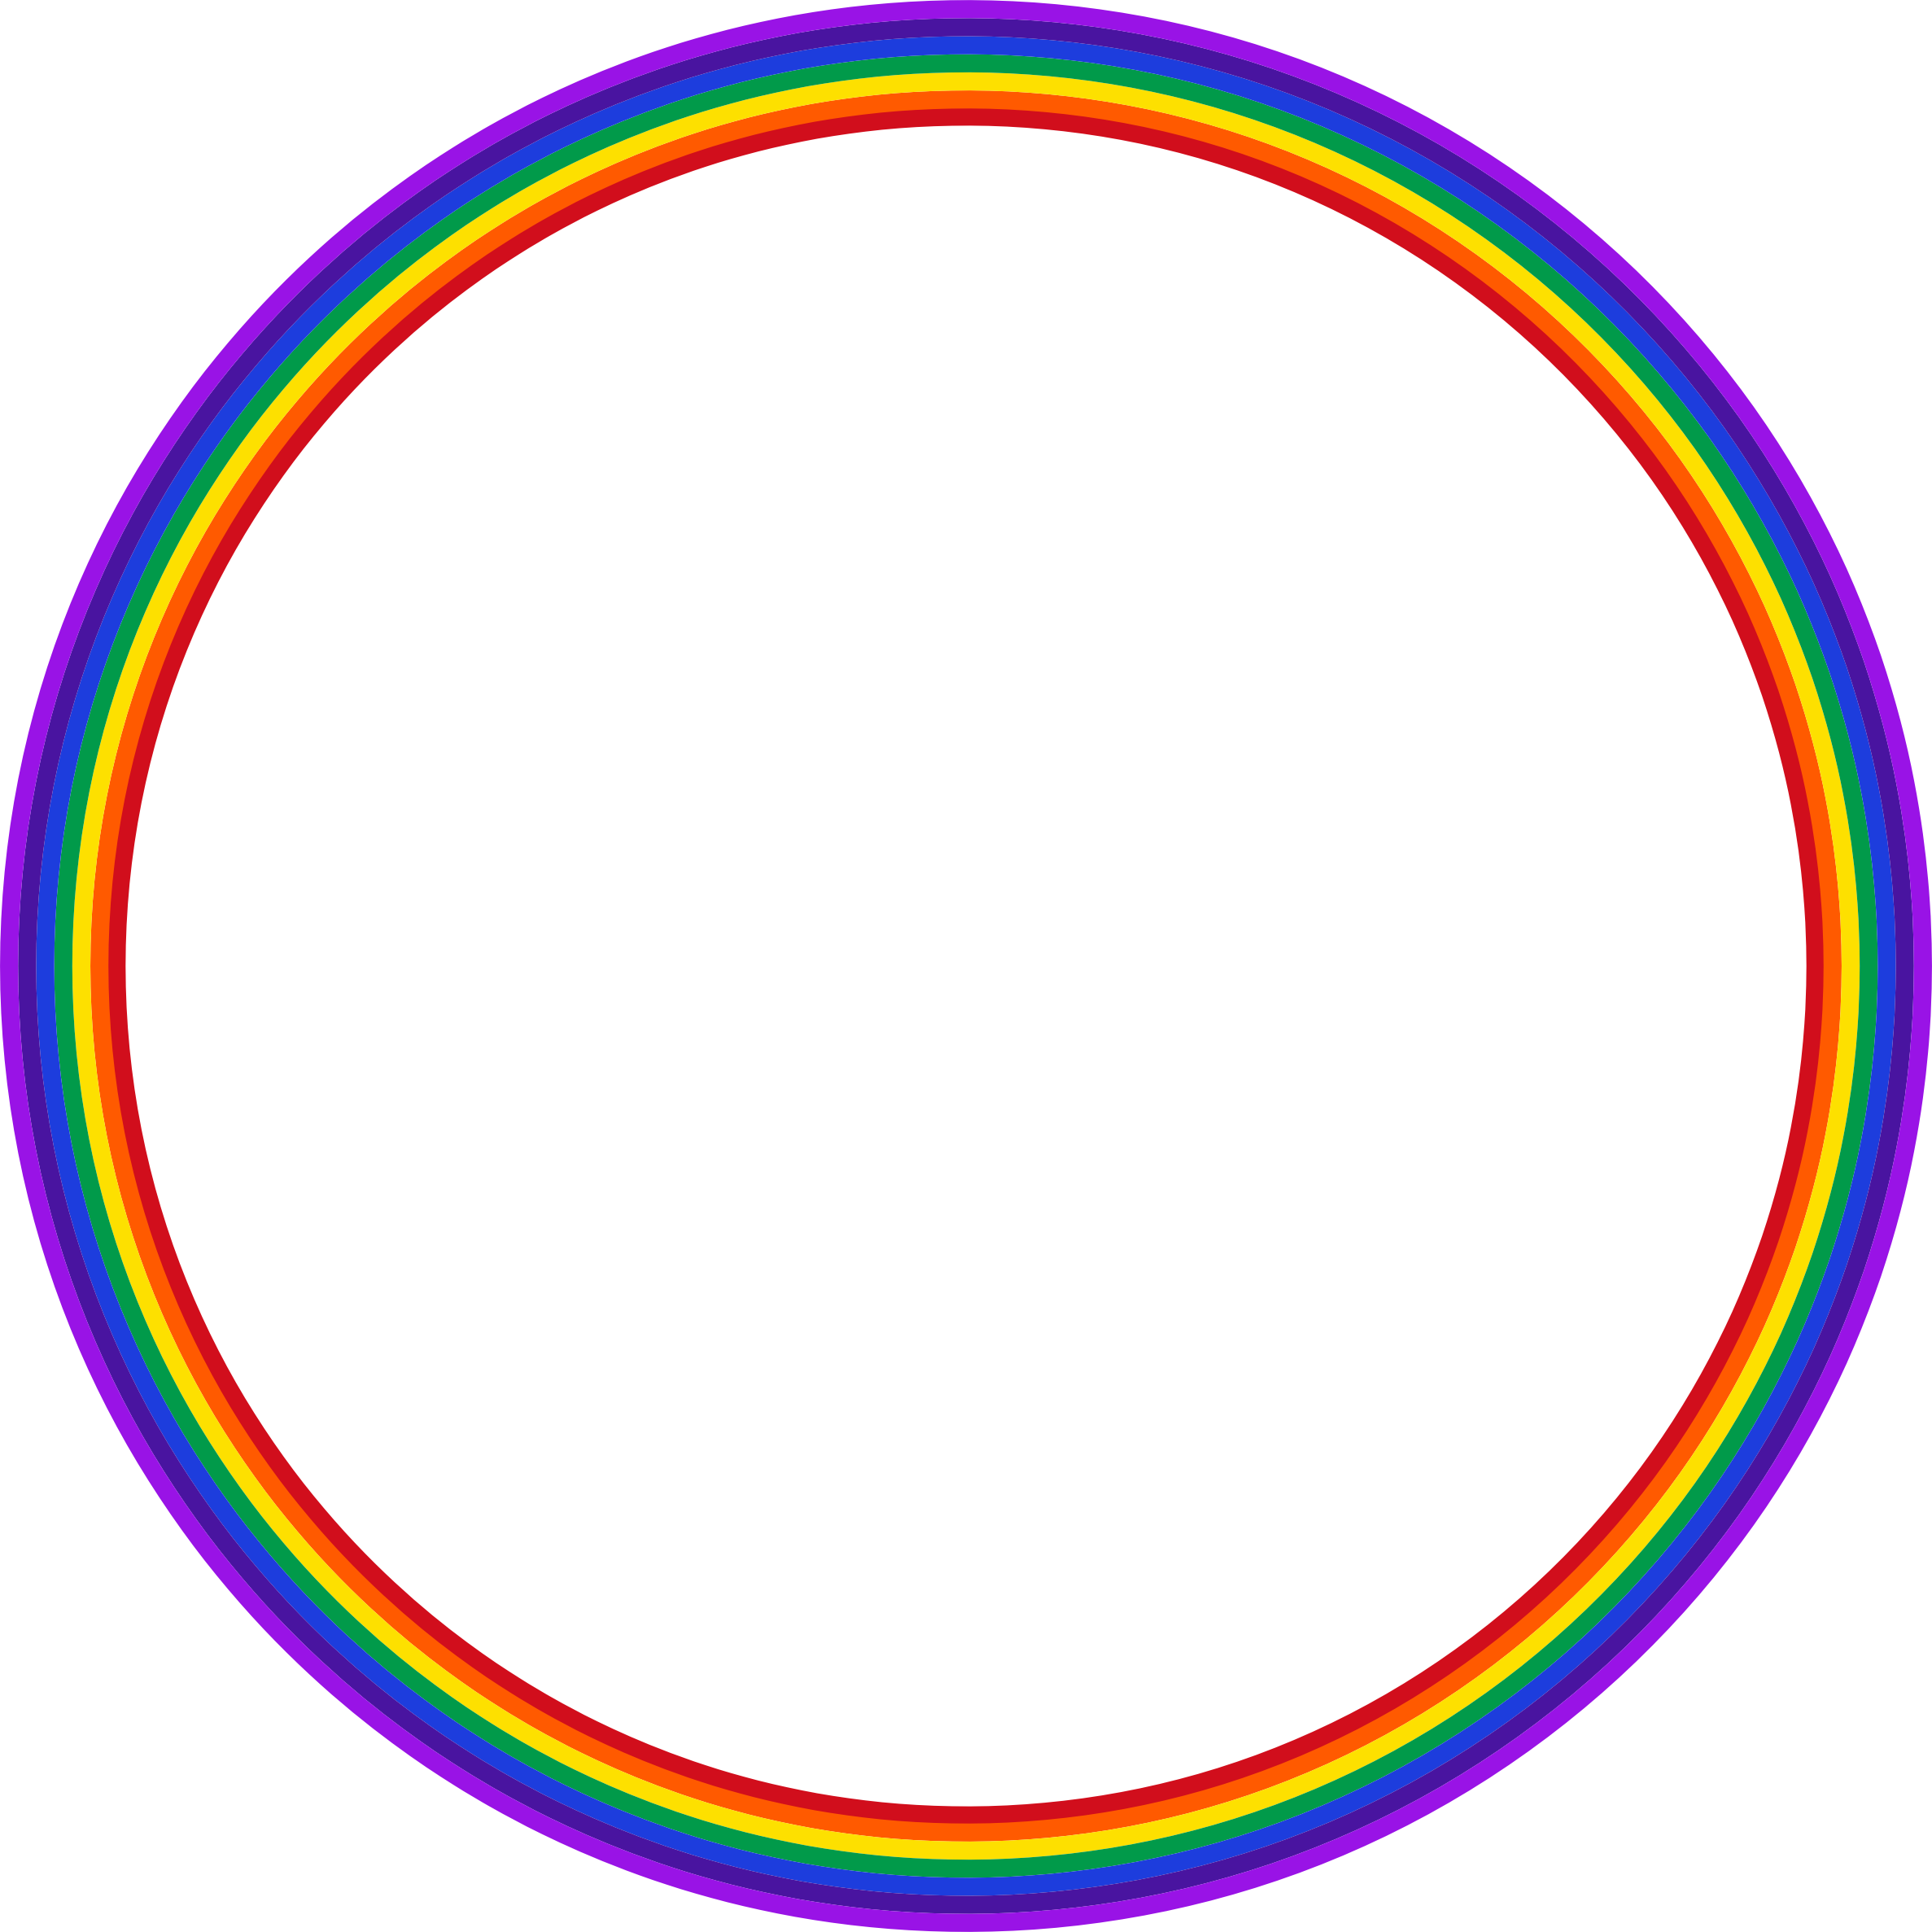 This Rainbow Circle Is A Good Example Of The Circle As A Symbol Suggesting Infinity Within The Field Of Graphic Design Circle Rainbow Graphic Design